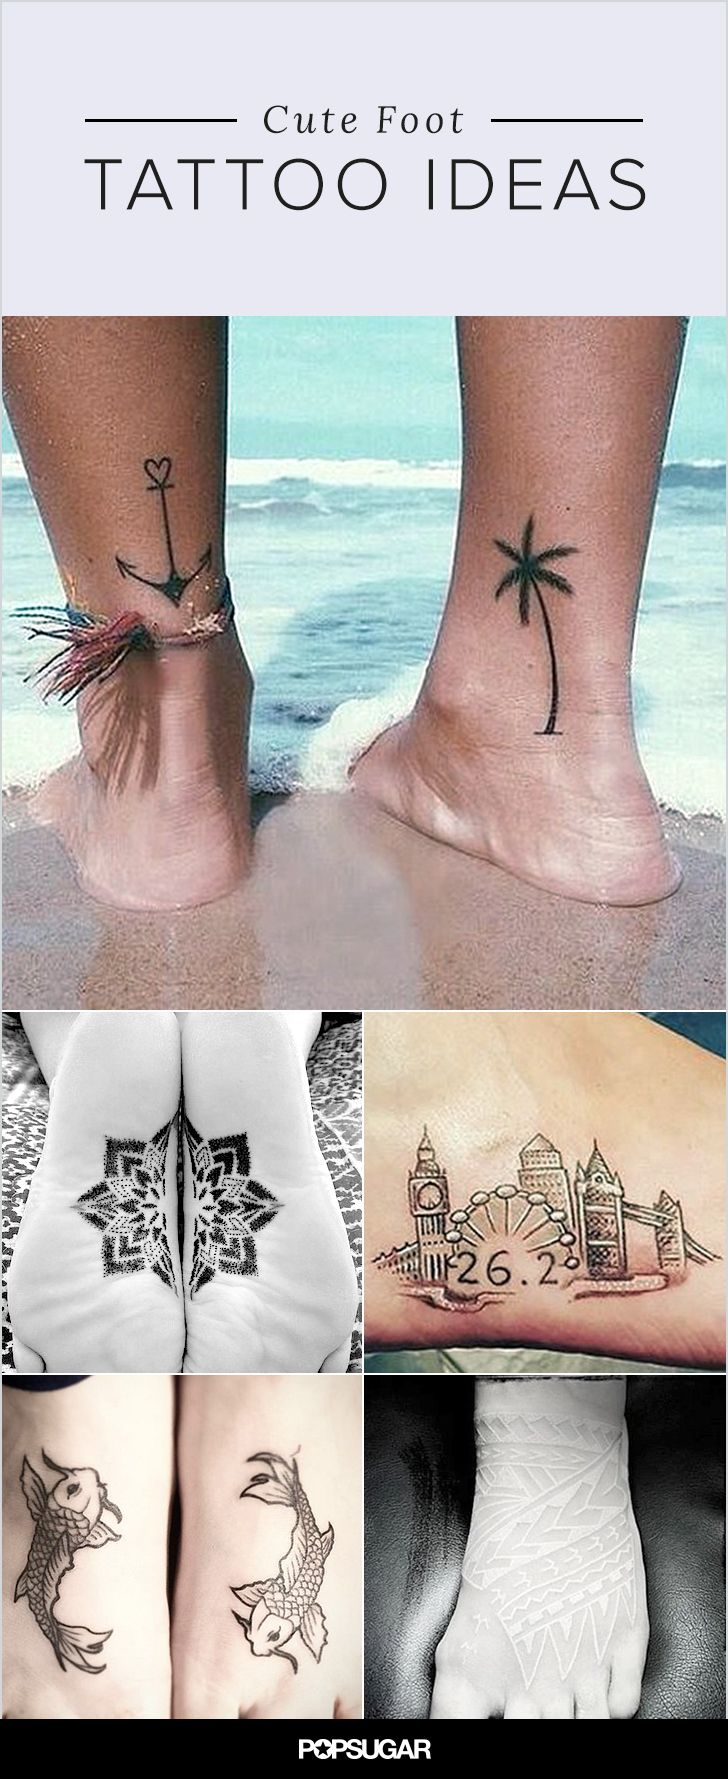 While they may be two of the most painful spots to get a tattoo, your feet are an amazing canvas for body art. You can easily show them off with sandals (or hide them when visiting Grandma), and they can look particularly pretty when accented with an anklet. Your feet have taken you down life's path, and that makes them the perfect place to talk about your journey. Get inspired for your own ink with these designs!